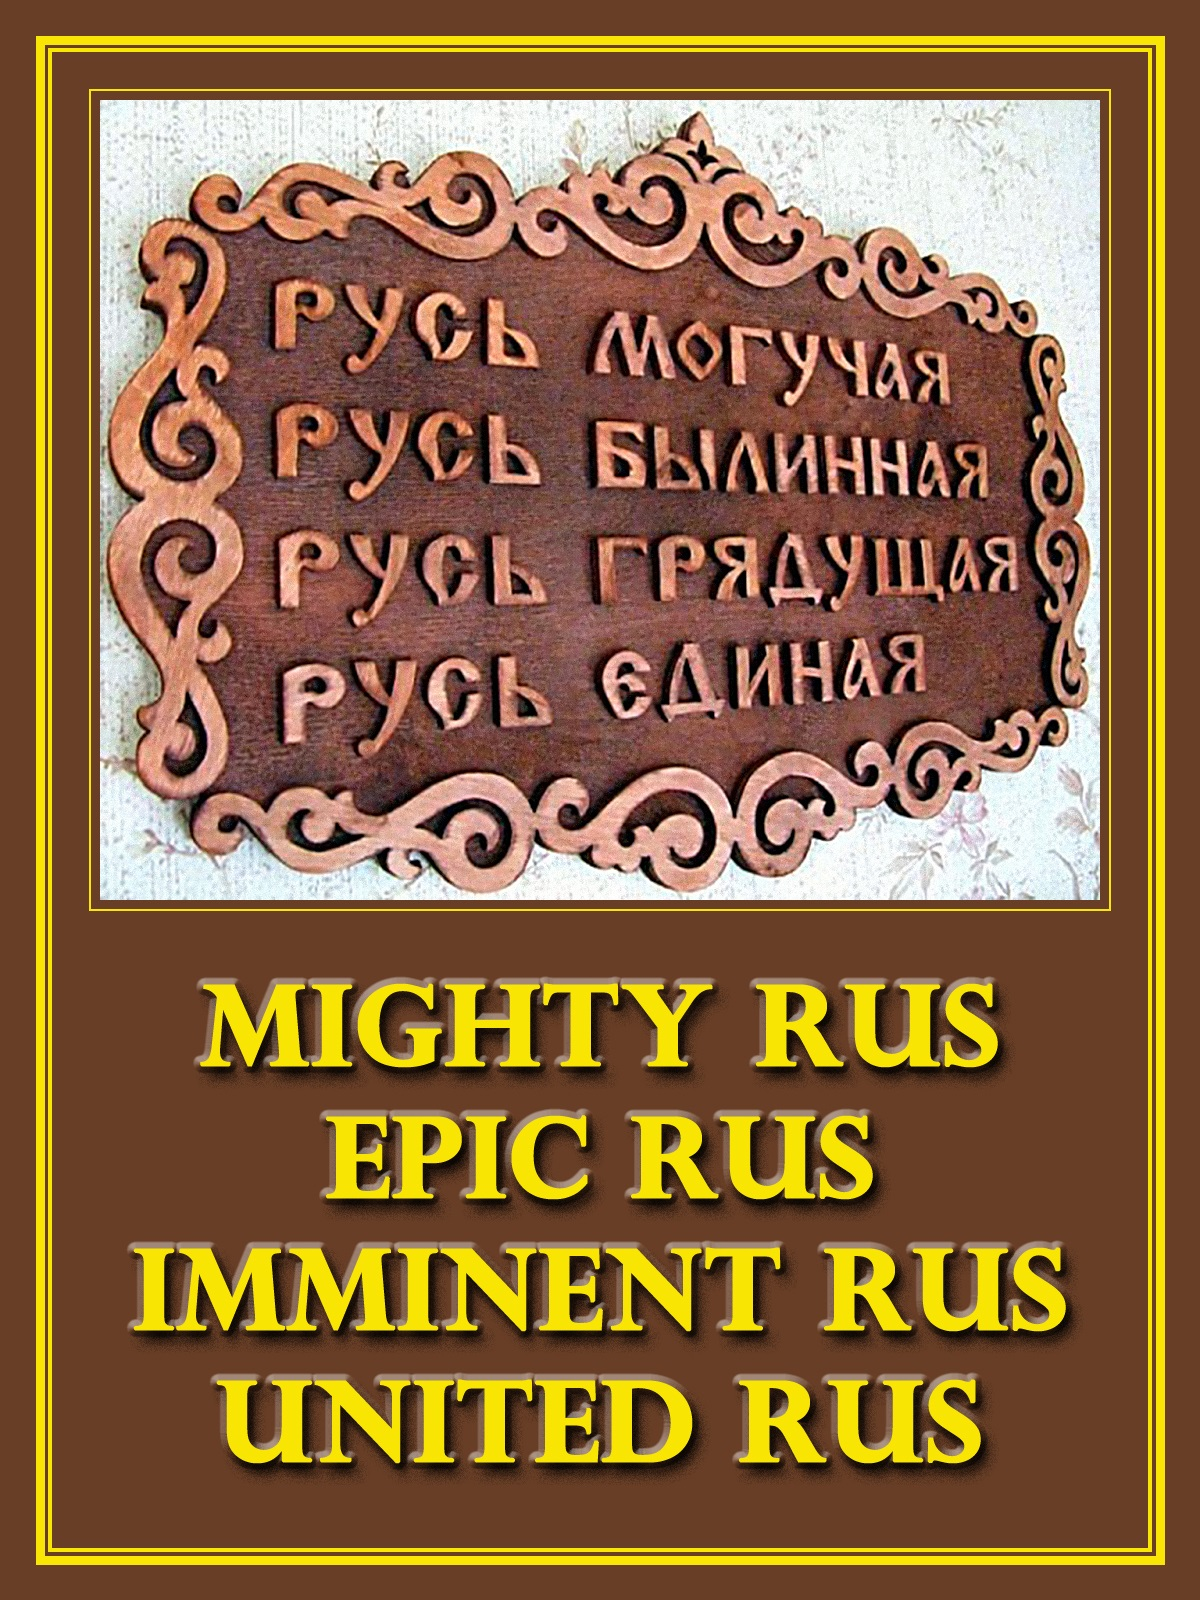 00 Mighty Rus... 240516